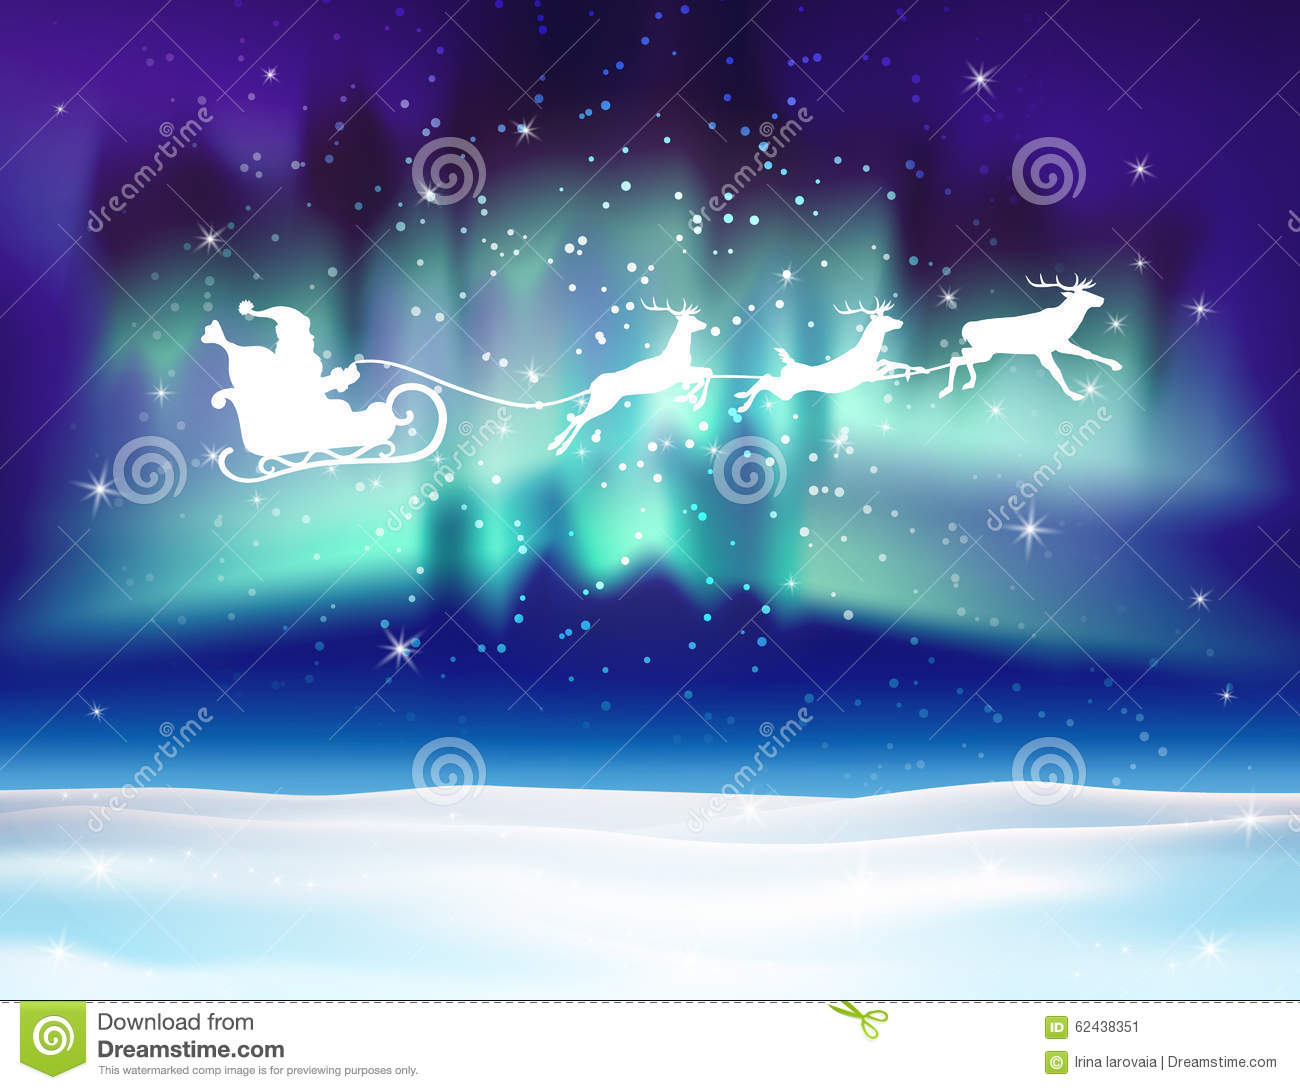 Vector Reindeer And Santa Claus On Northern Lights Background. Stock ... bbce03a70